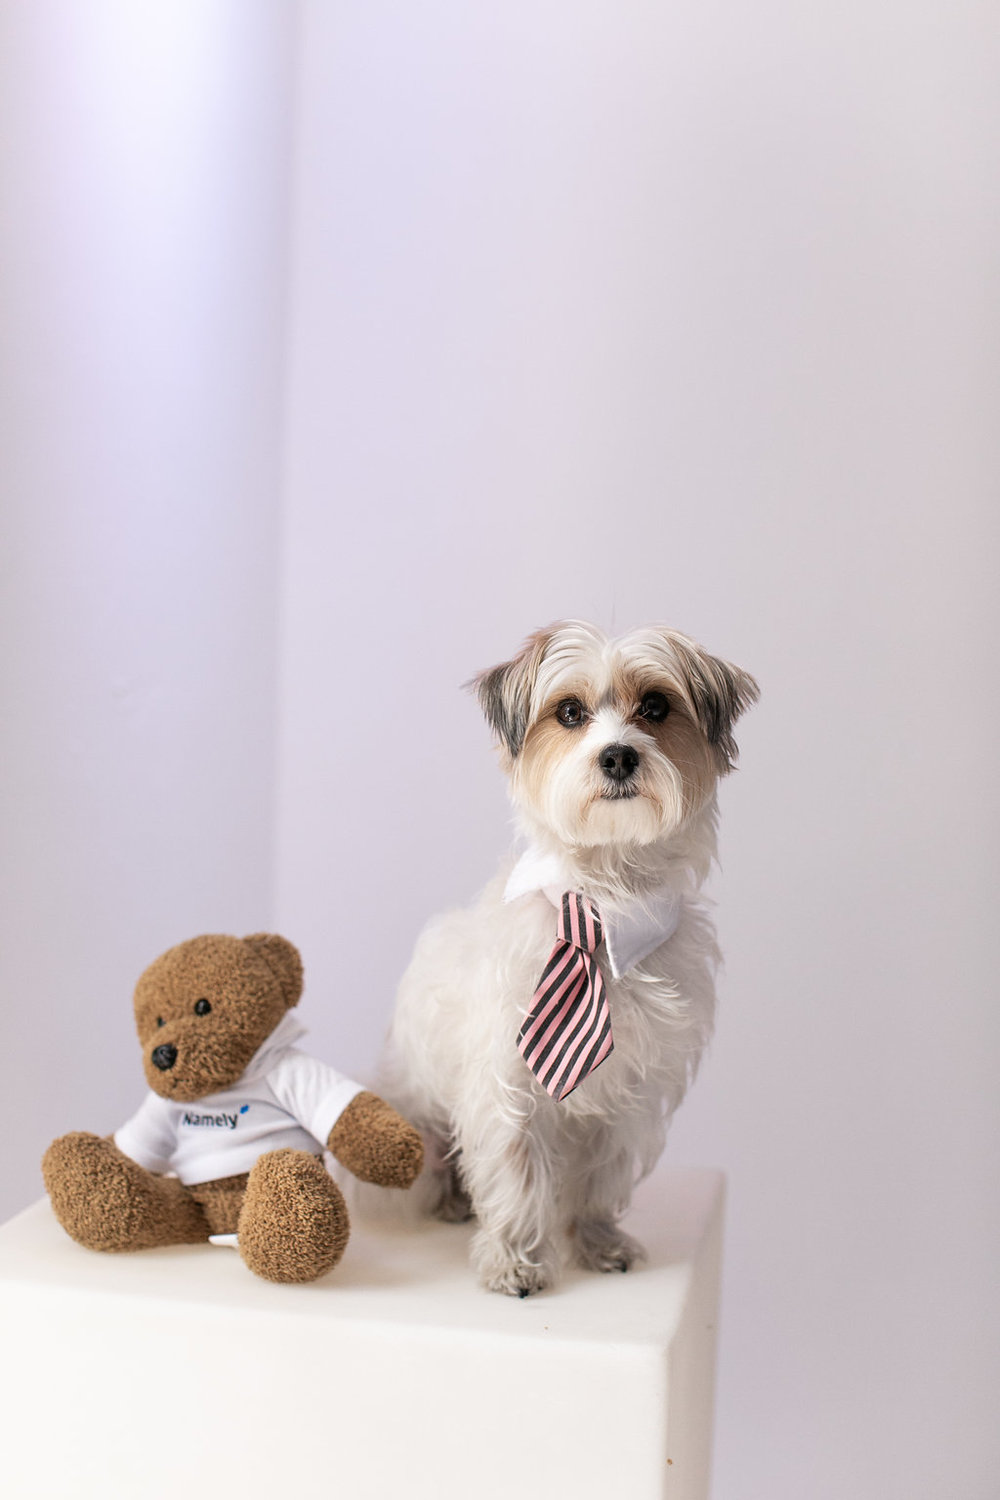 A dog poses with a NamelyBear